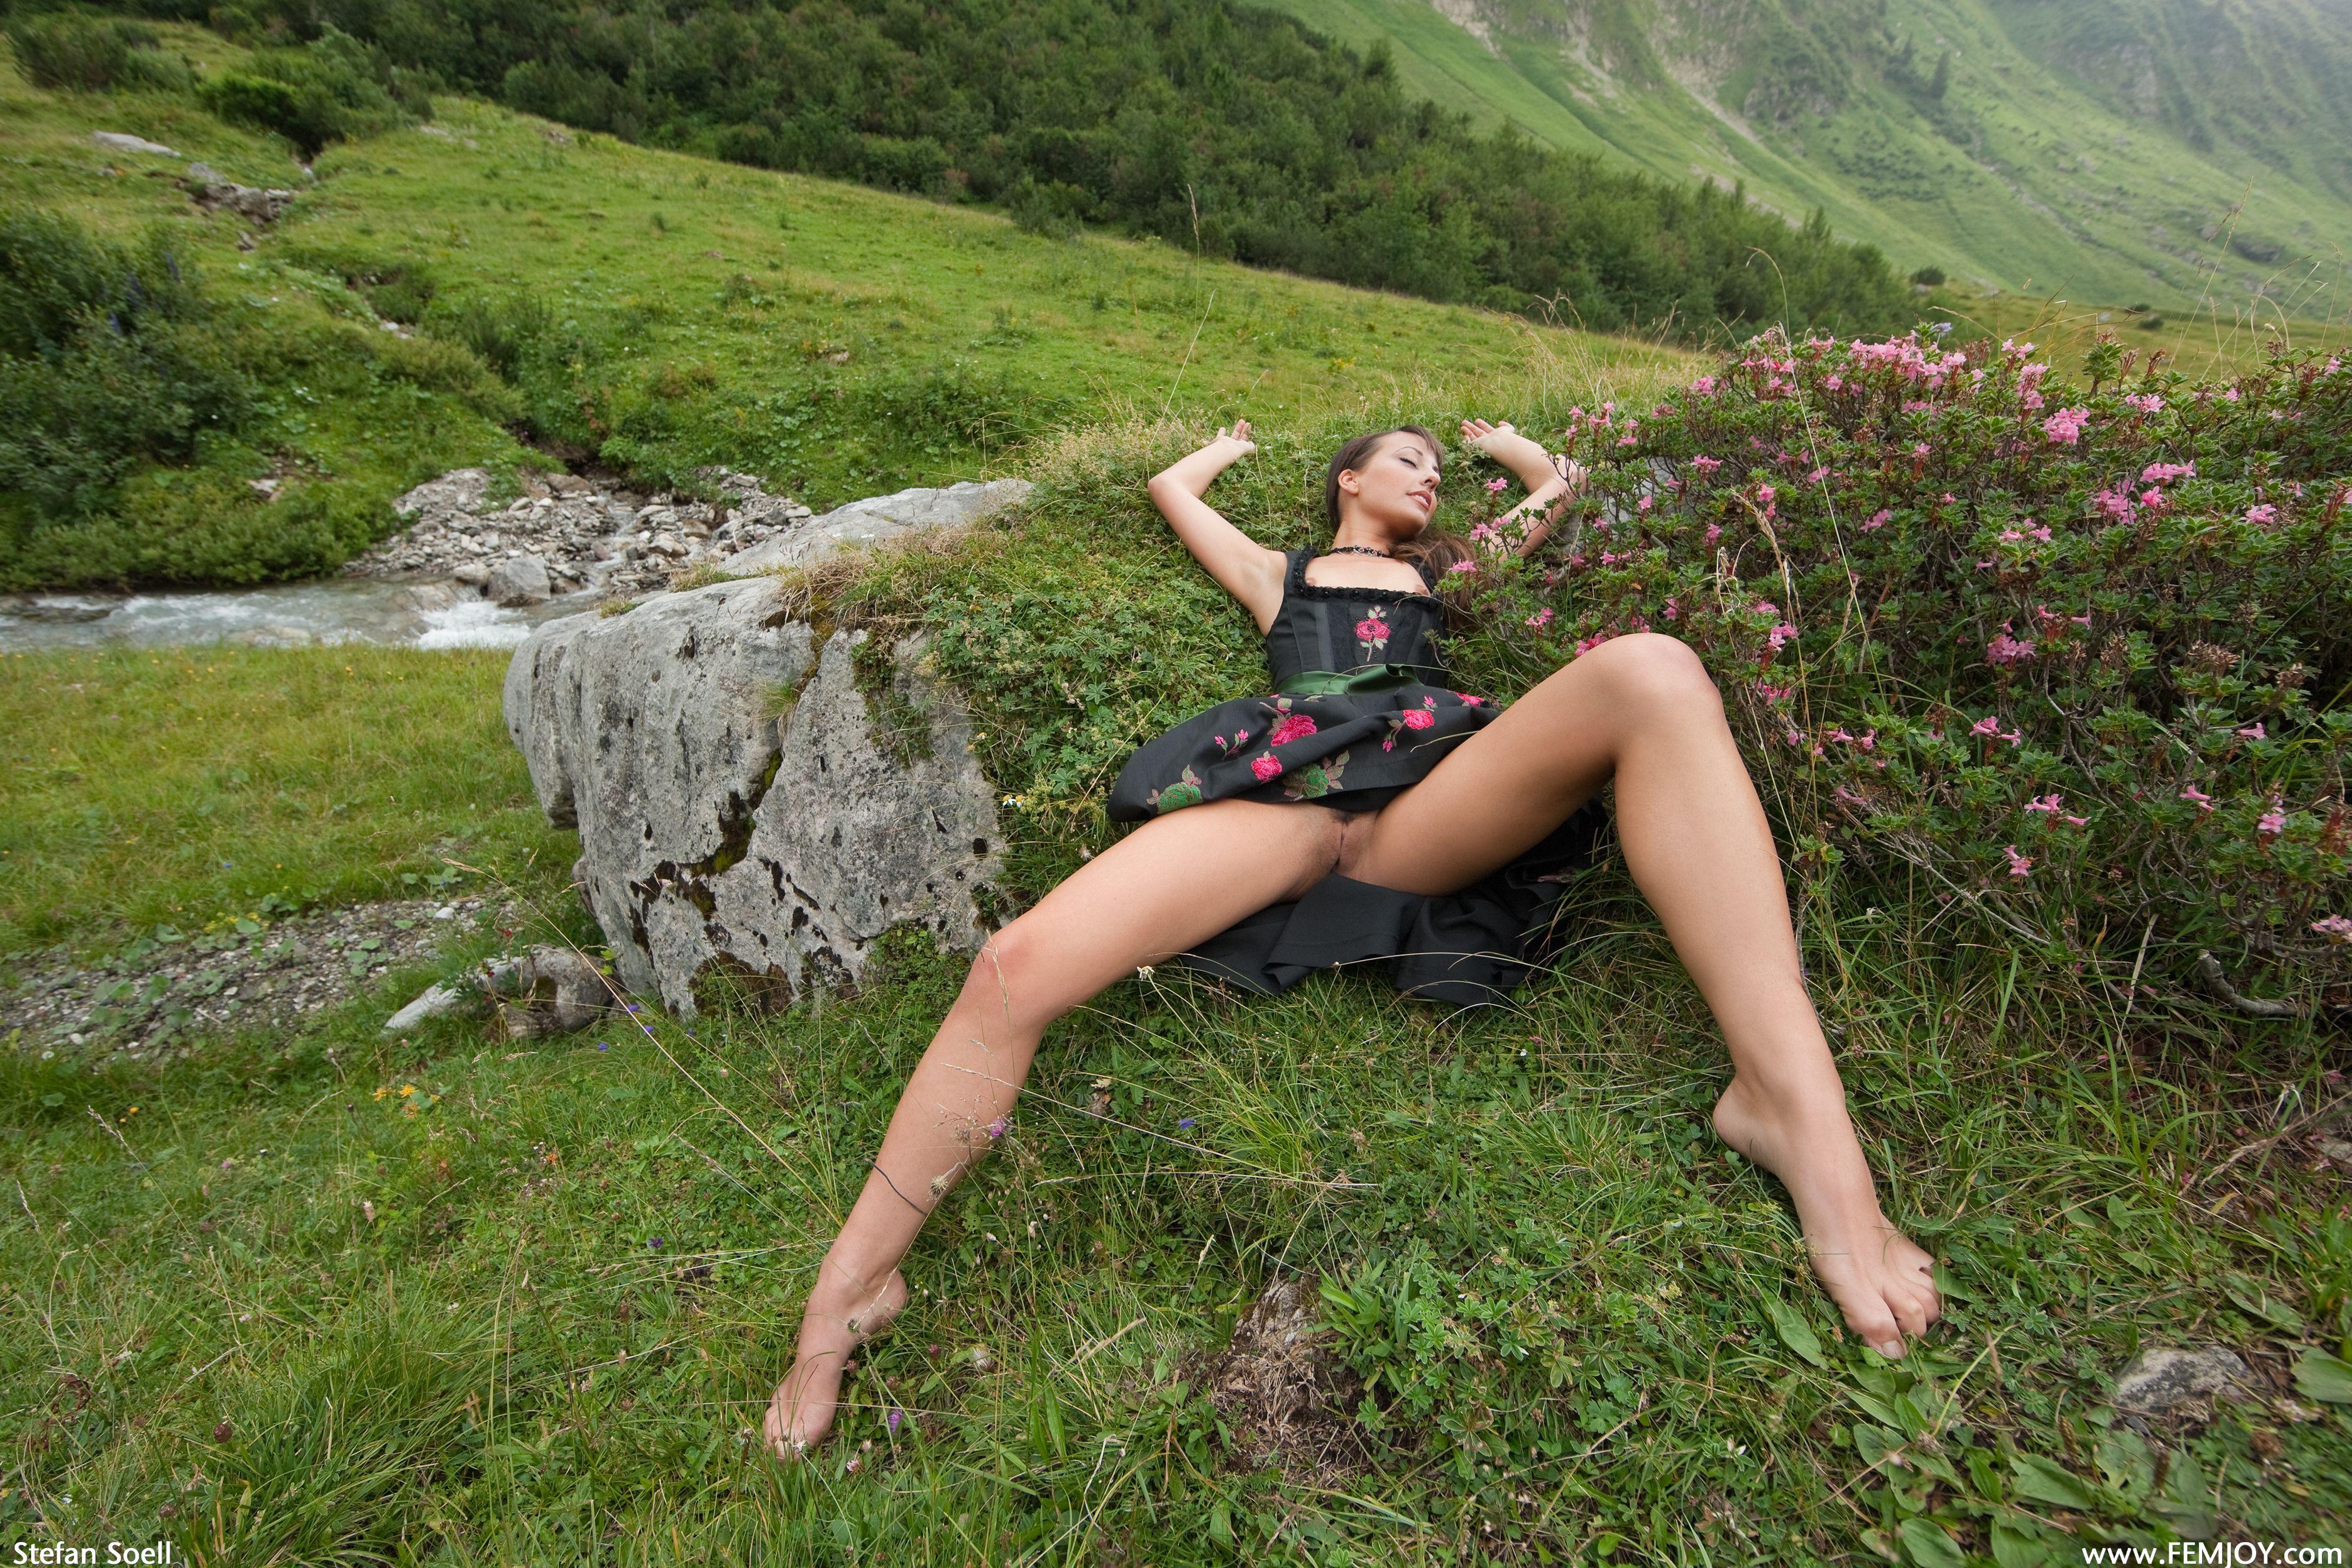 Nude girls fucking on mountain free download  exploited images